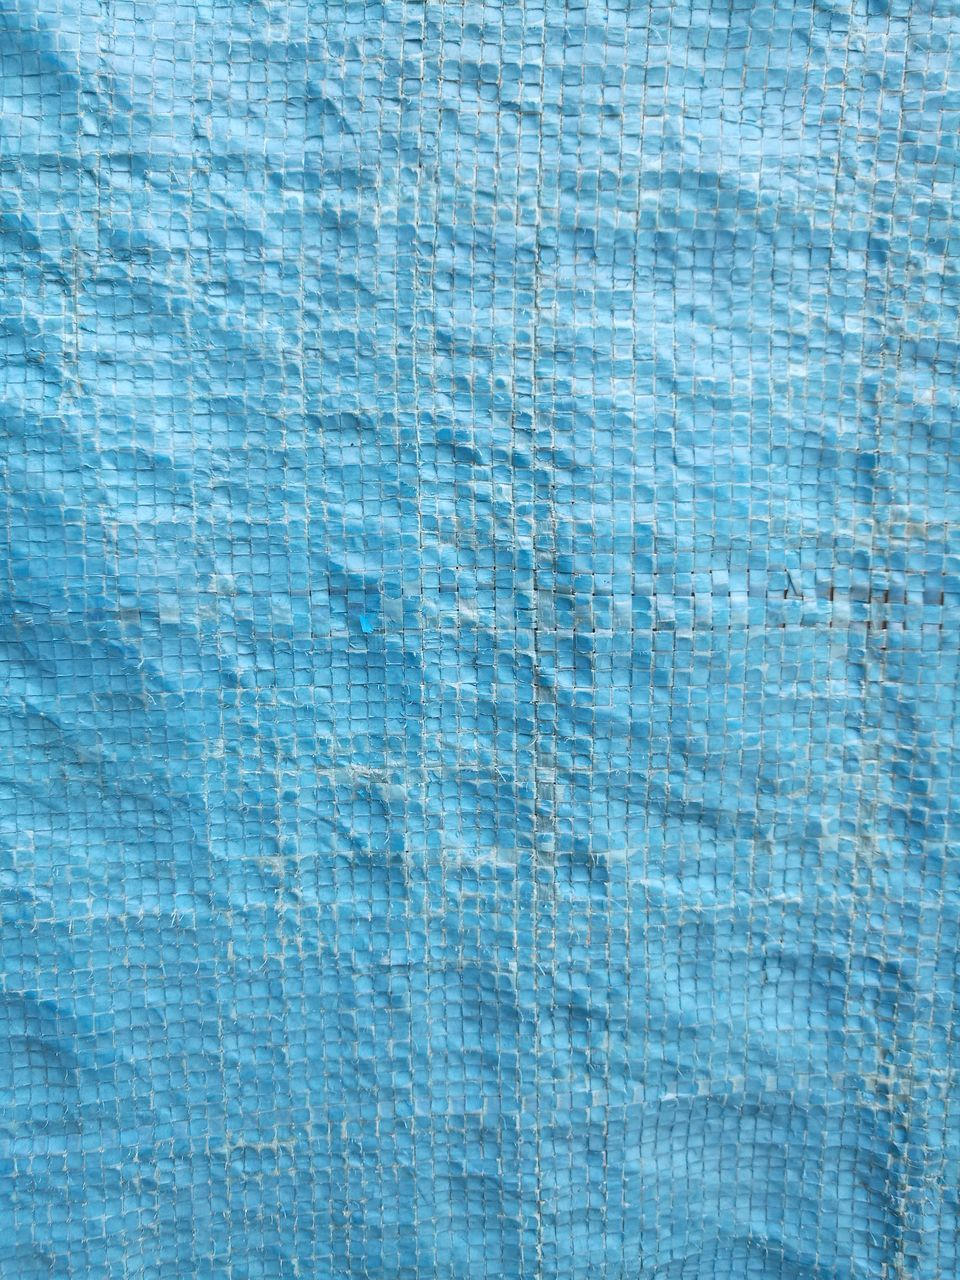 backgrounds, textured, blue, full frame, abstract, pattern, material, no people, textile, close-up, wood grain, nature, day